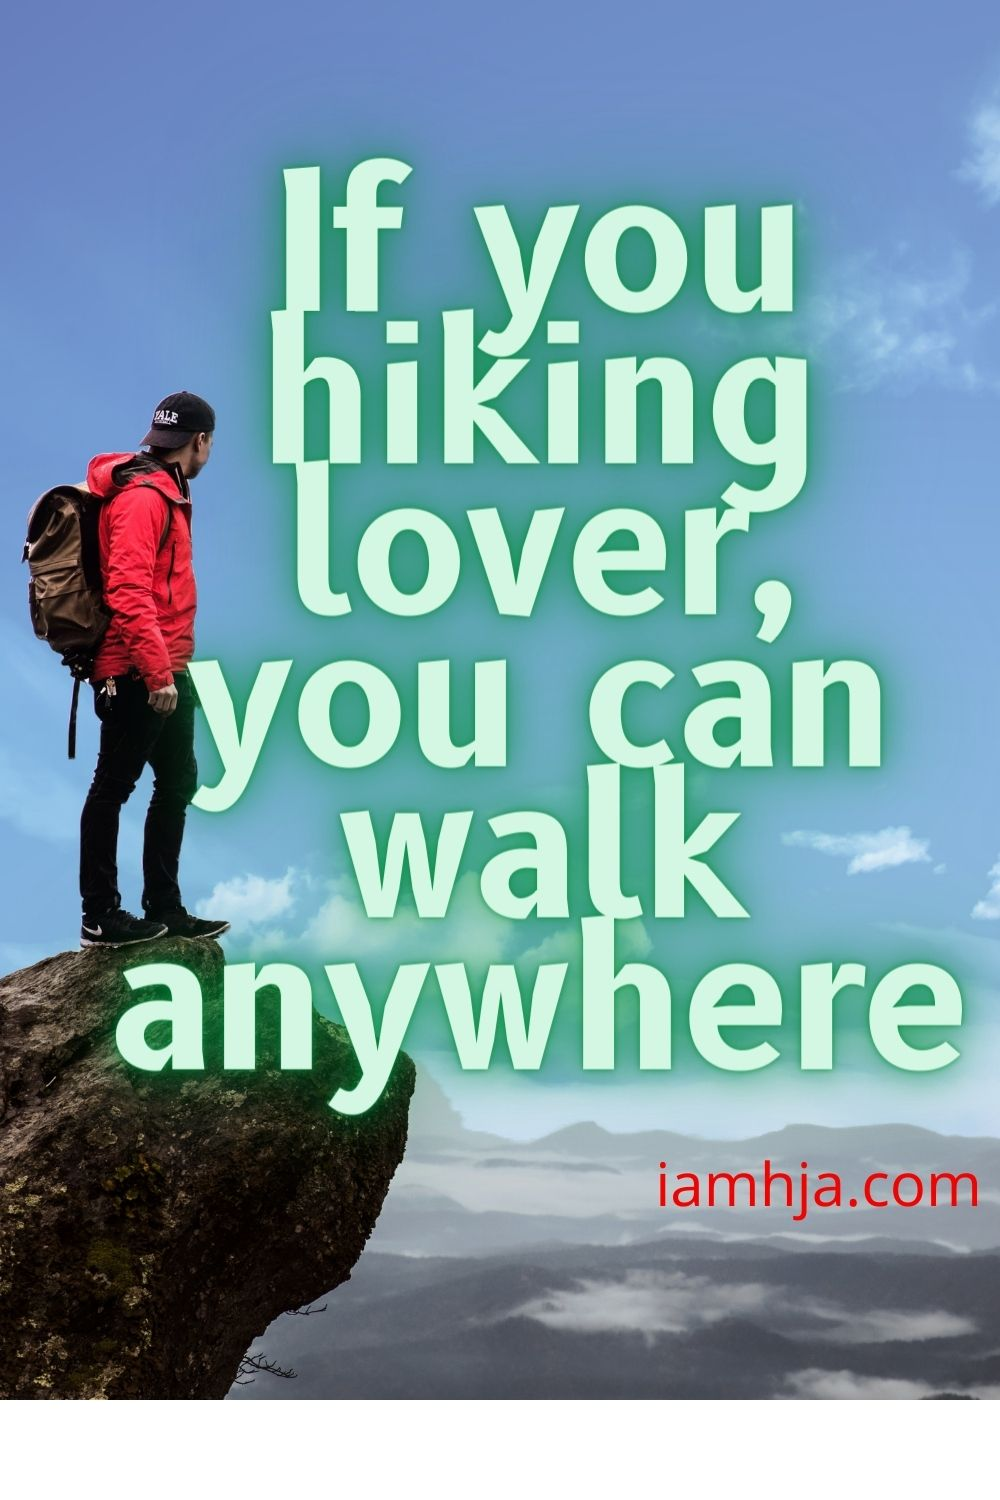 If you hiking lover, you can walk anywhere.